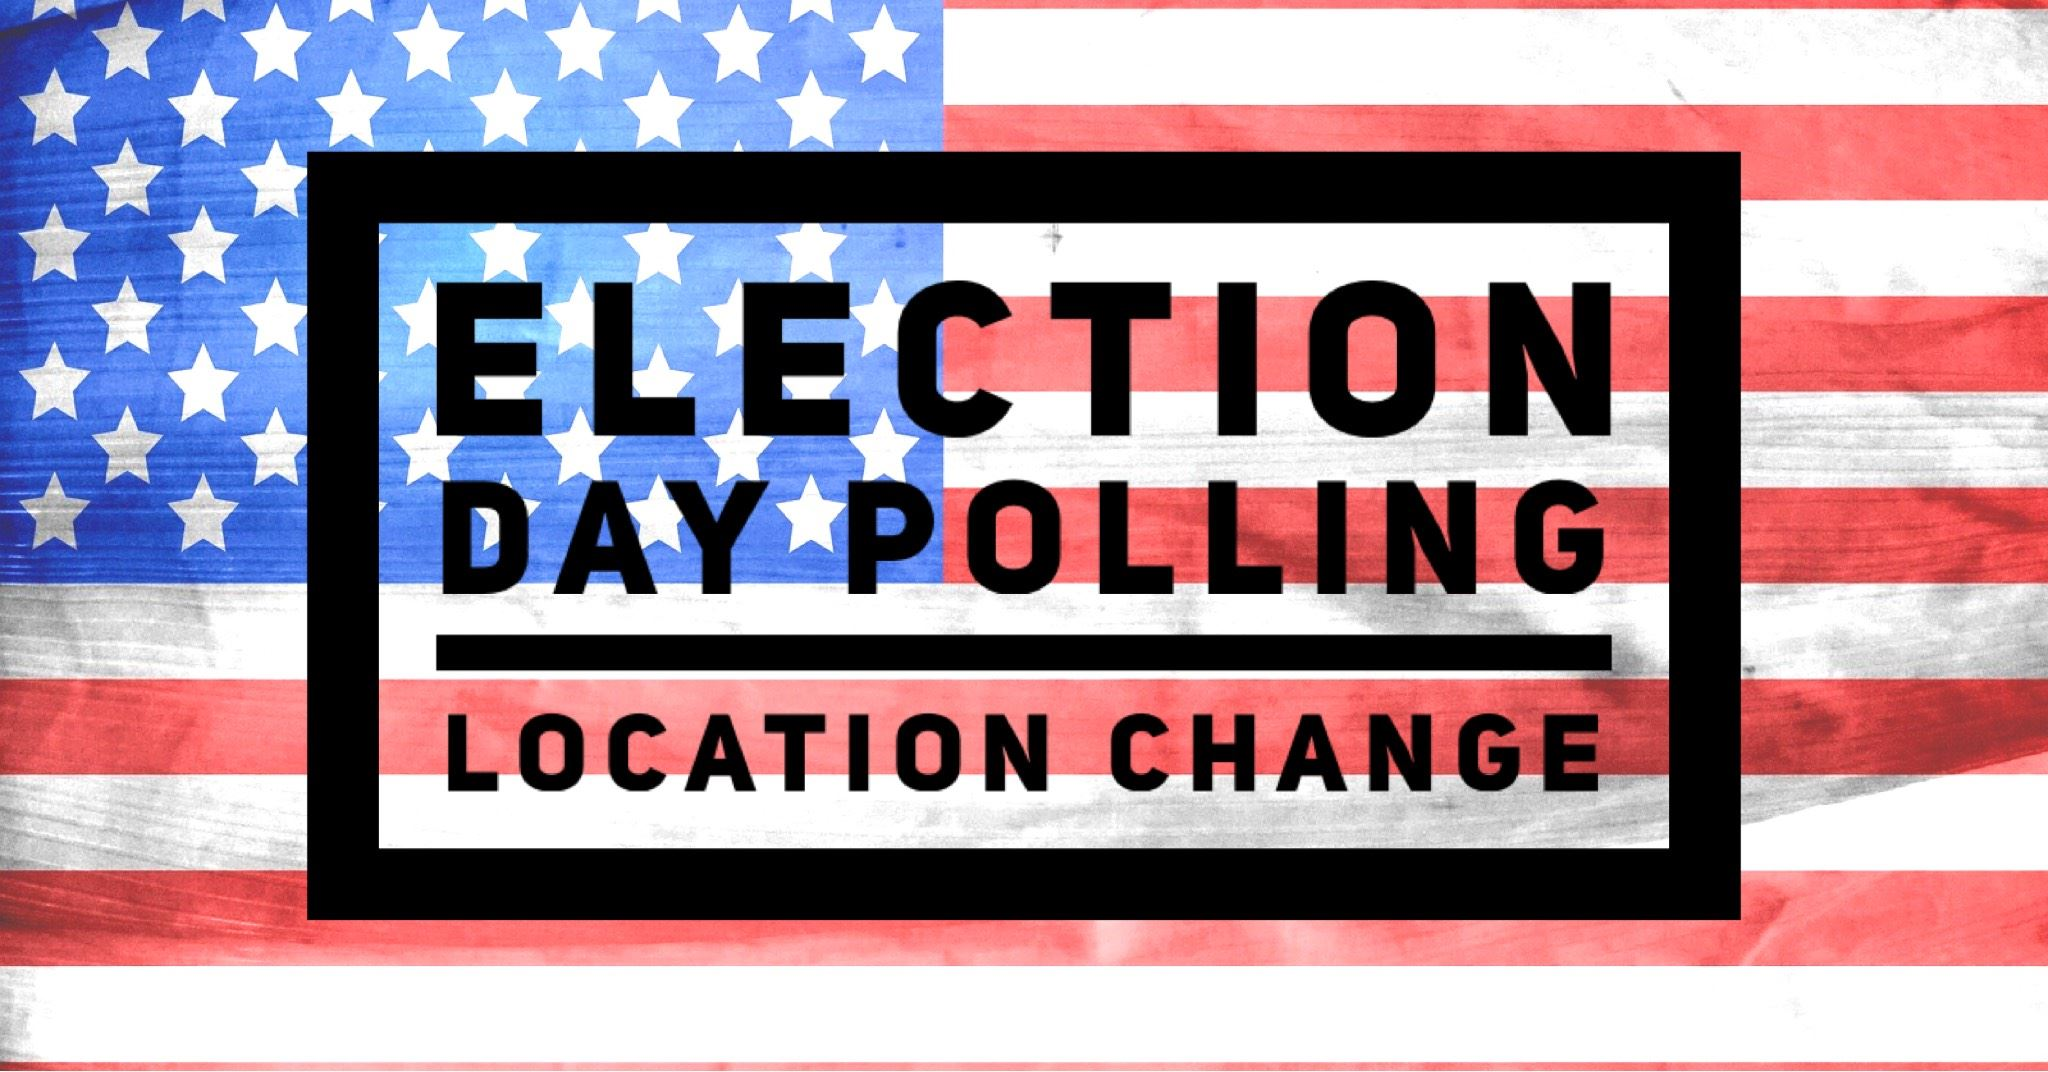 Image for news story: Election Day Polling Site Location Change